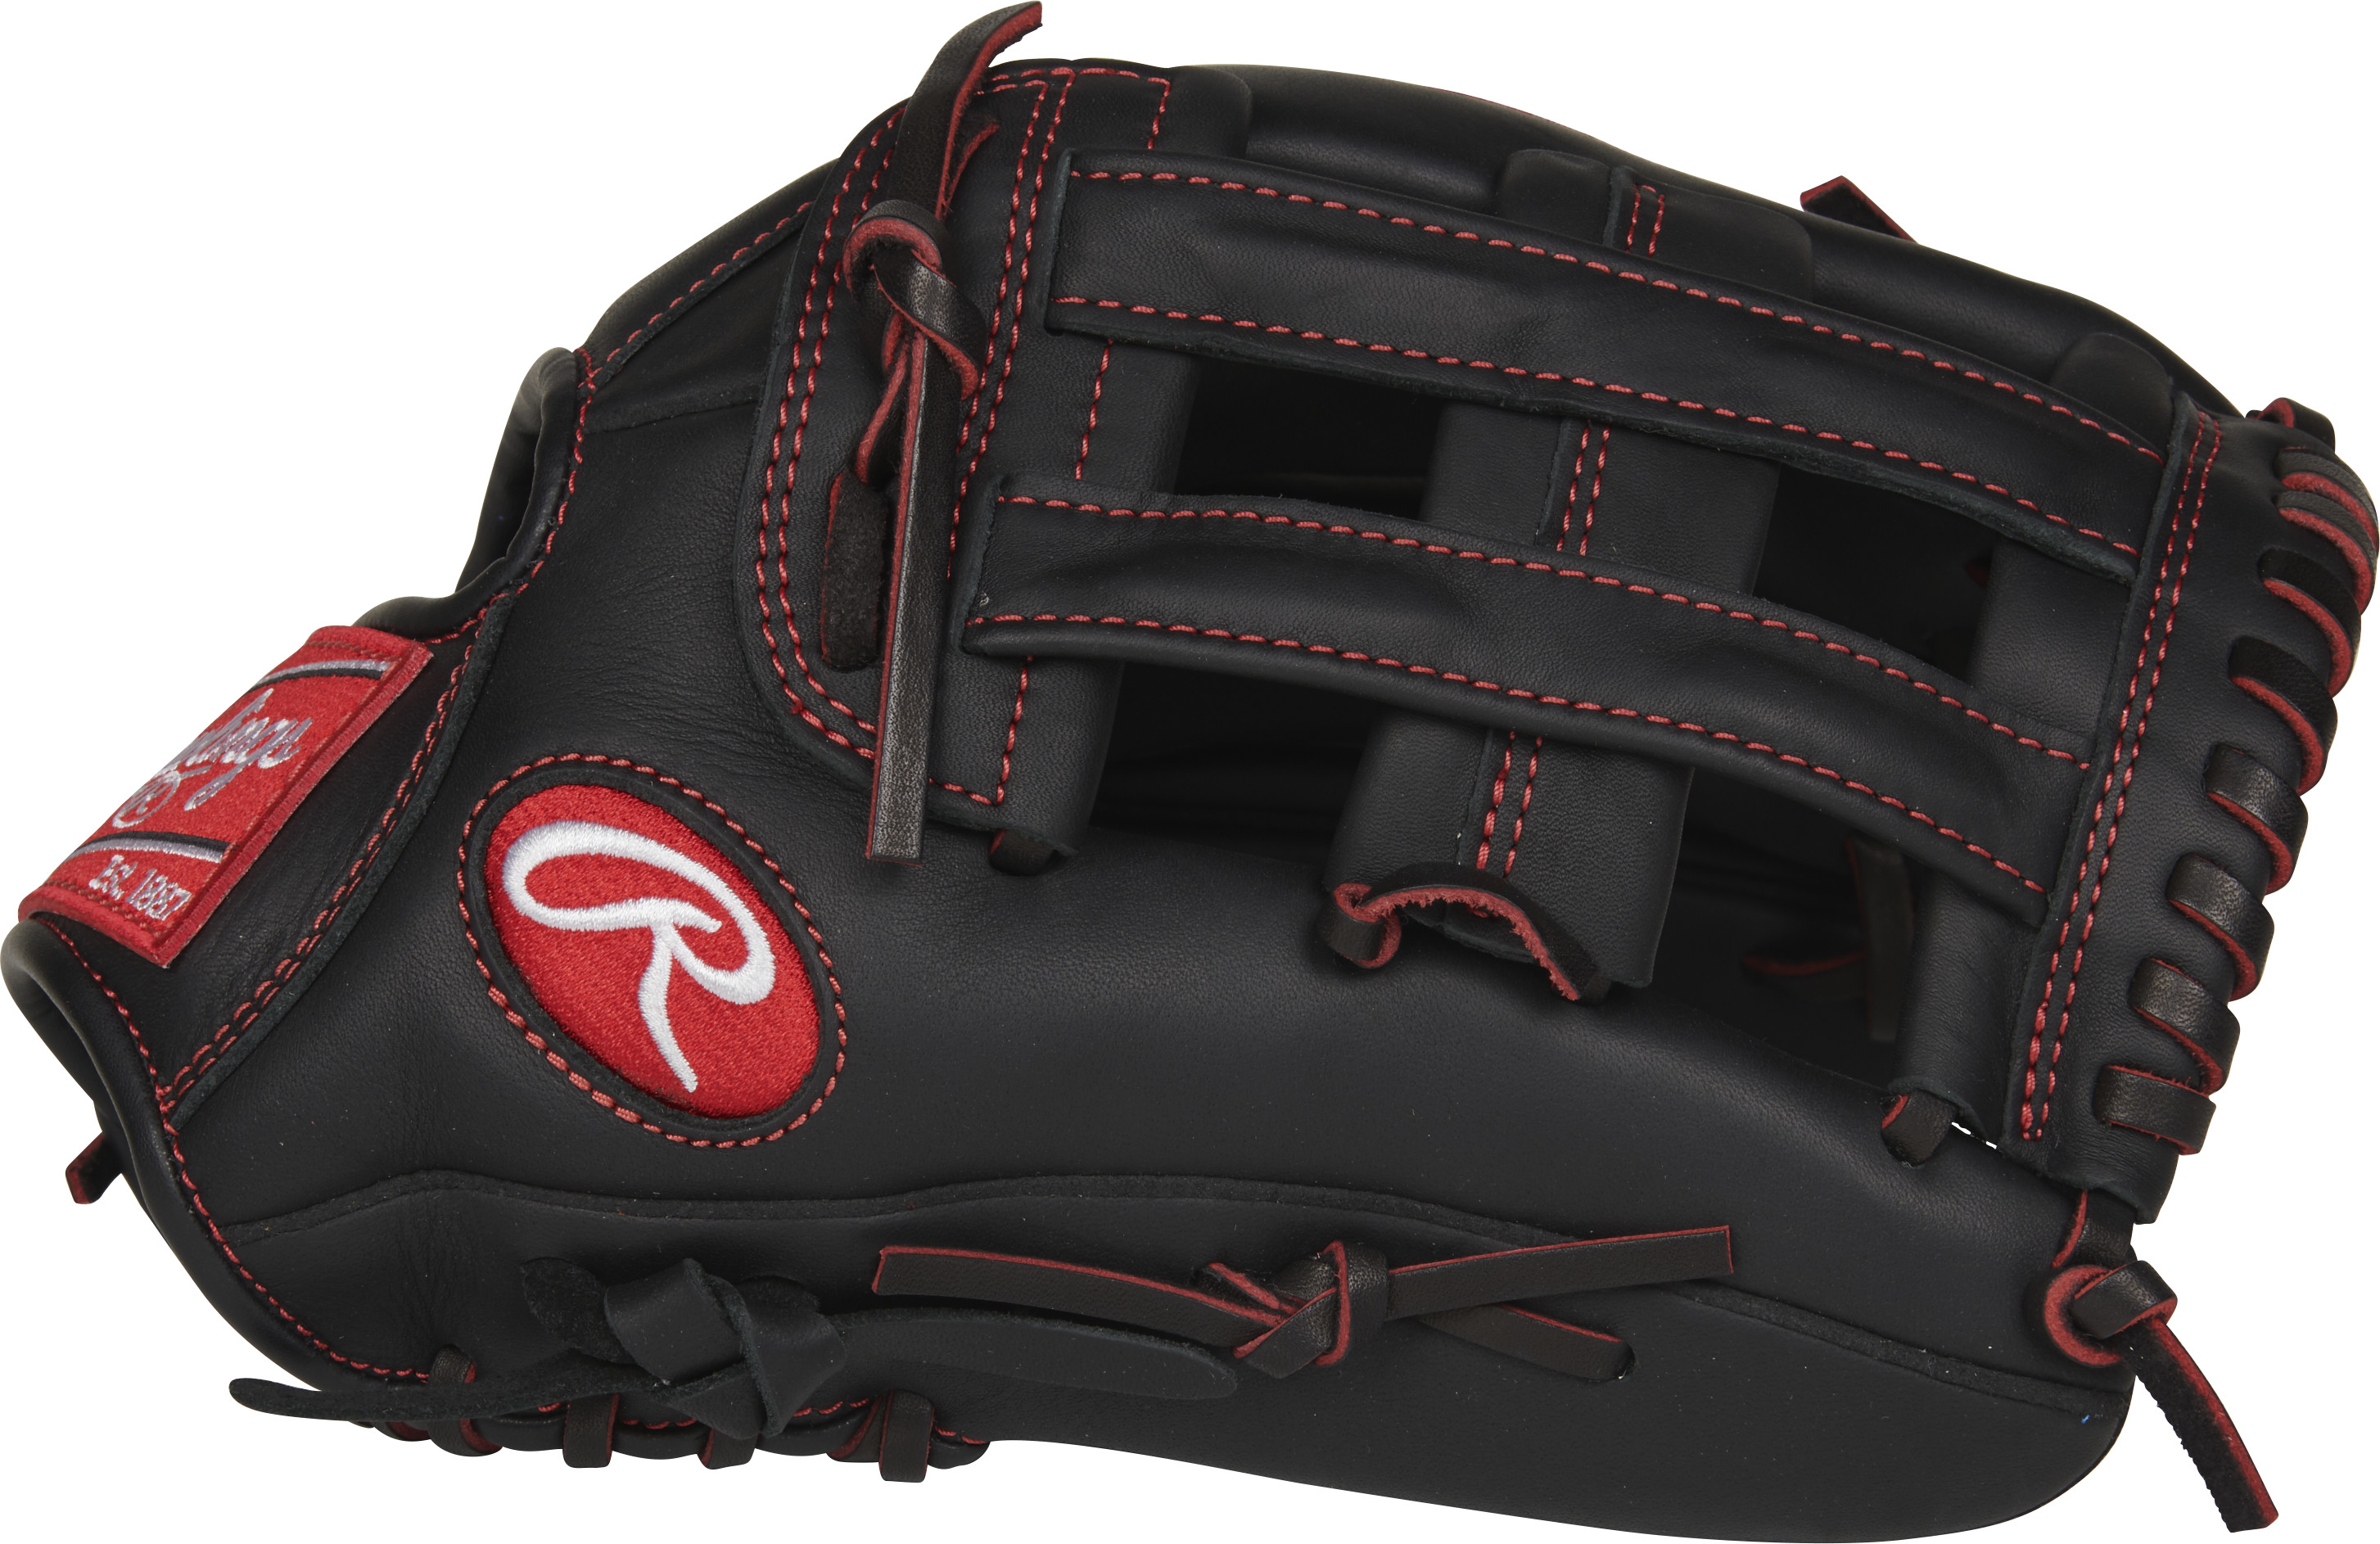 http://www.bestbatdeals.com/images/gloves/rawlings/R9YPT6-6B-3.jpg